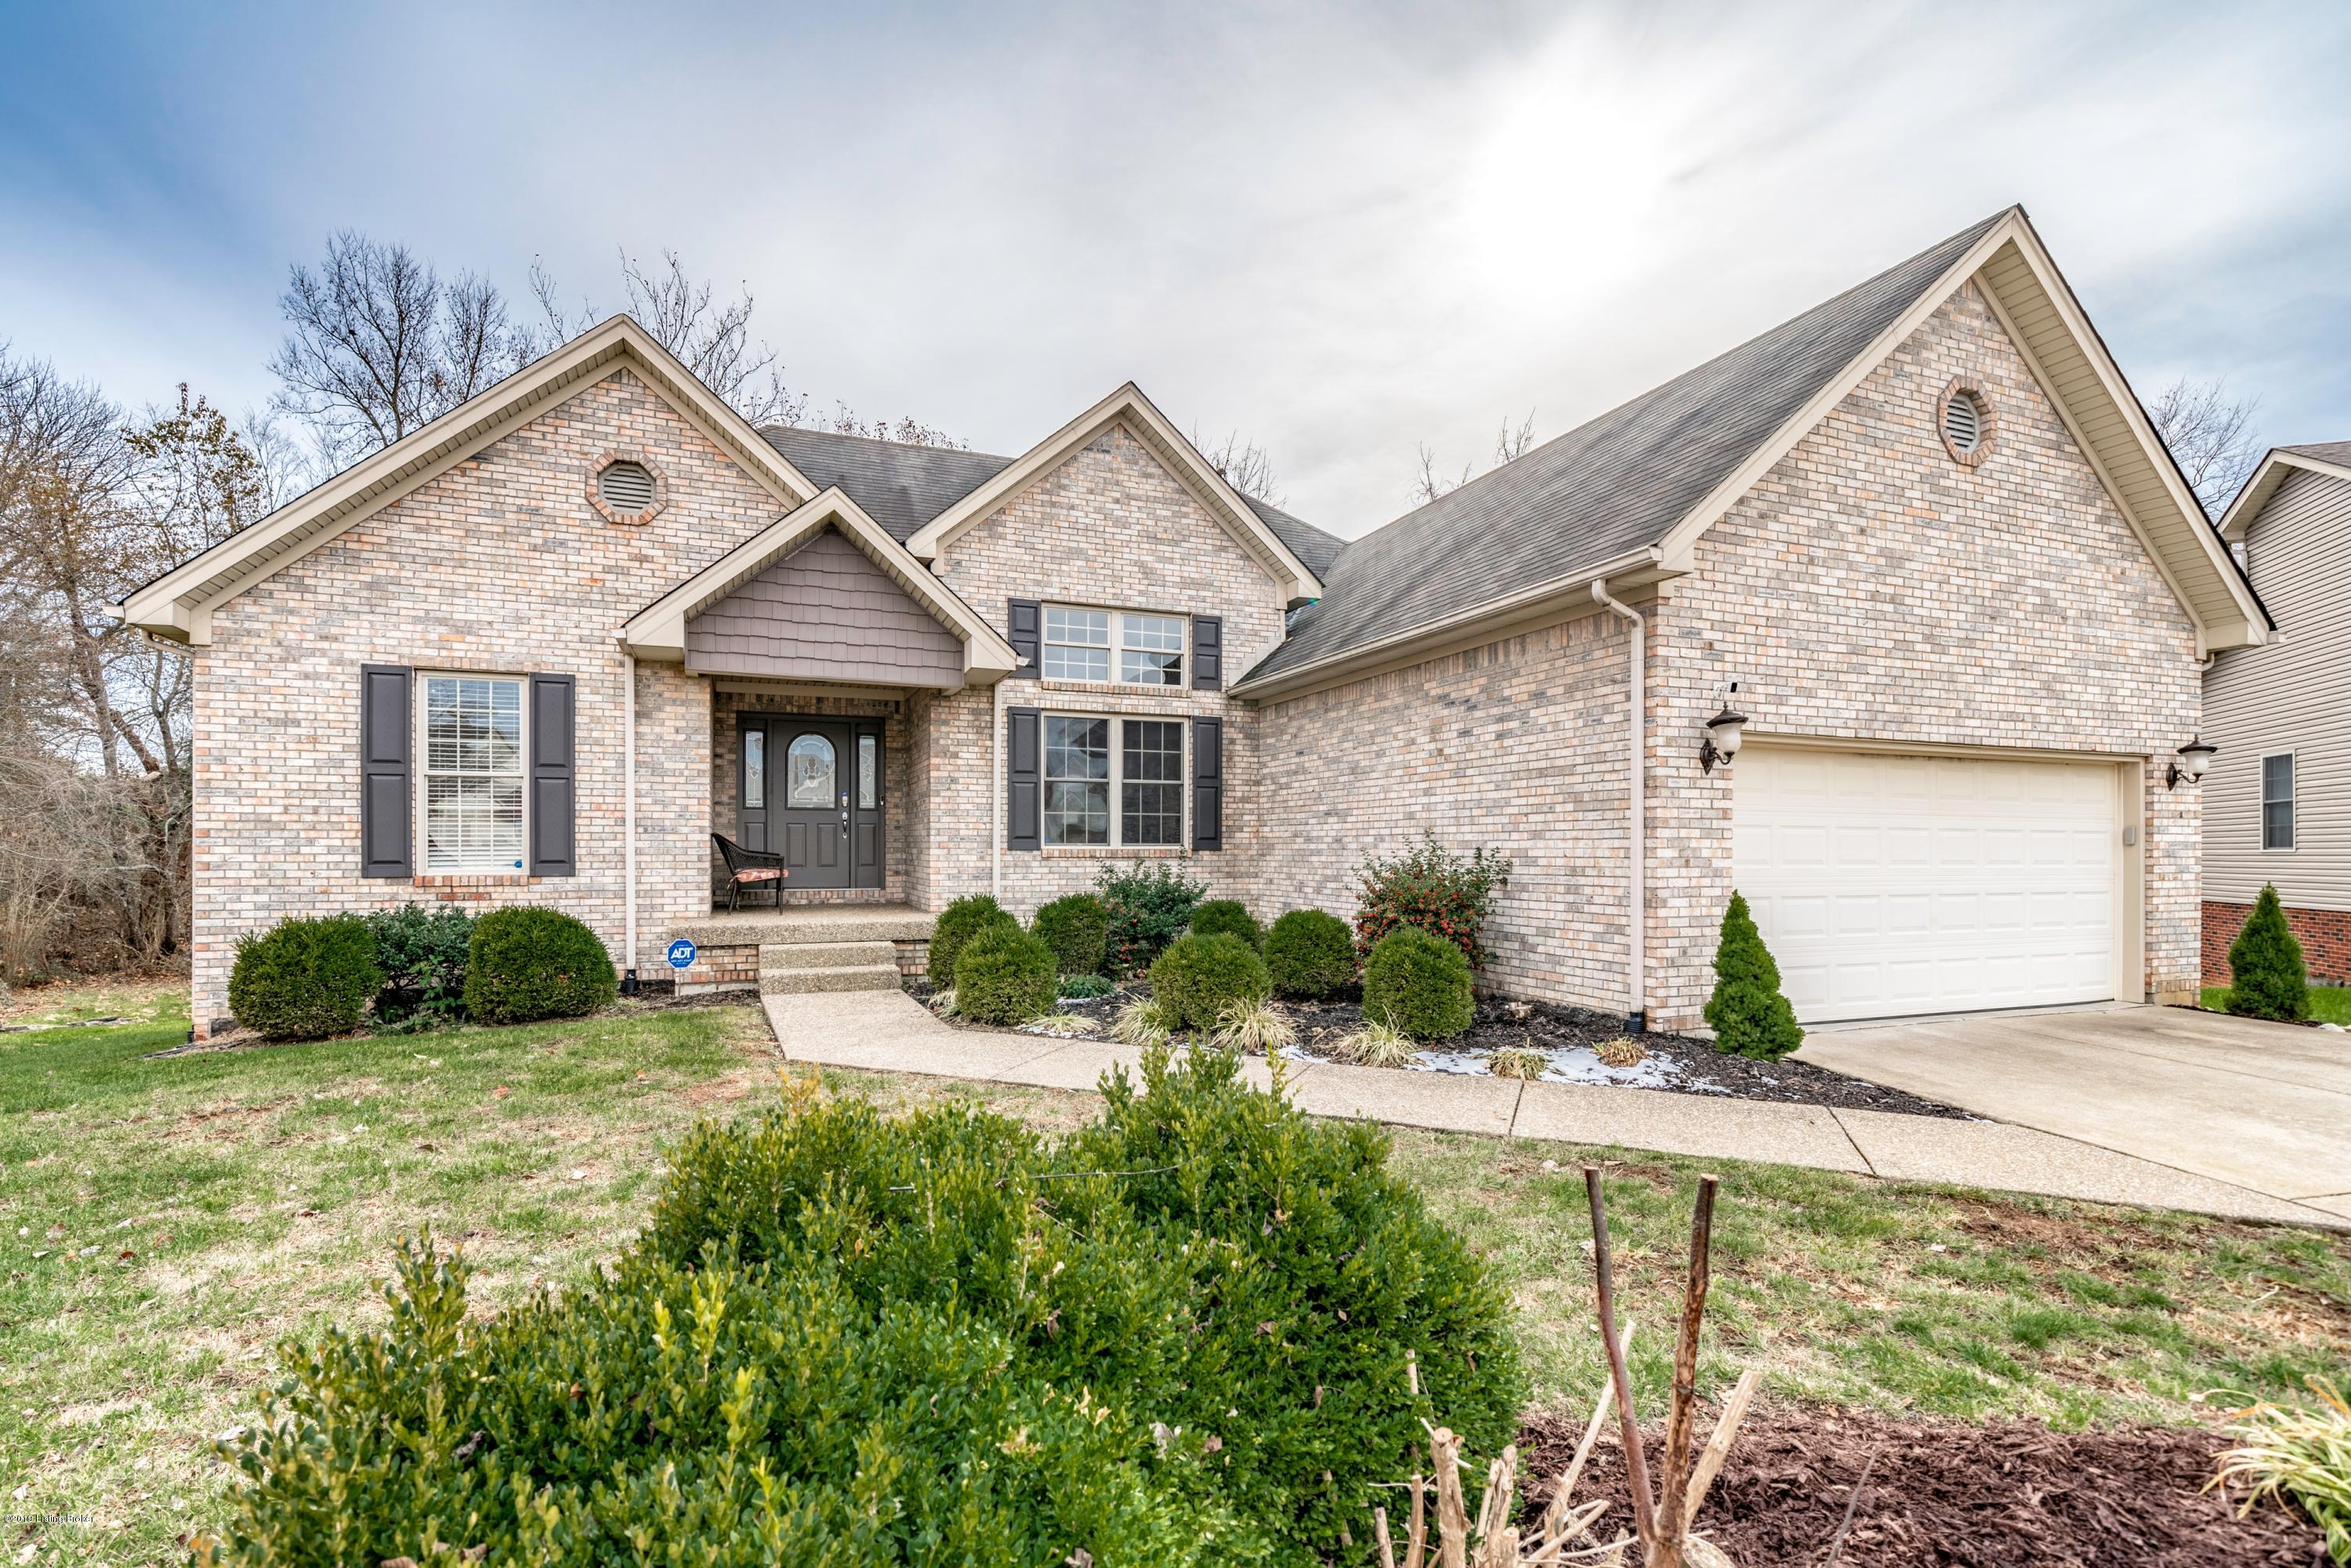 7401 Cove Way, Georgetown, Indiana 47122